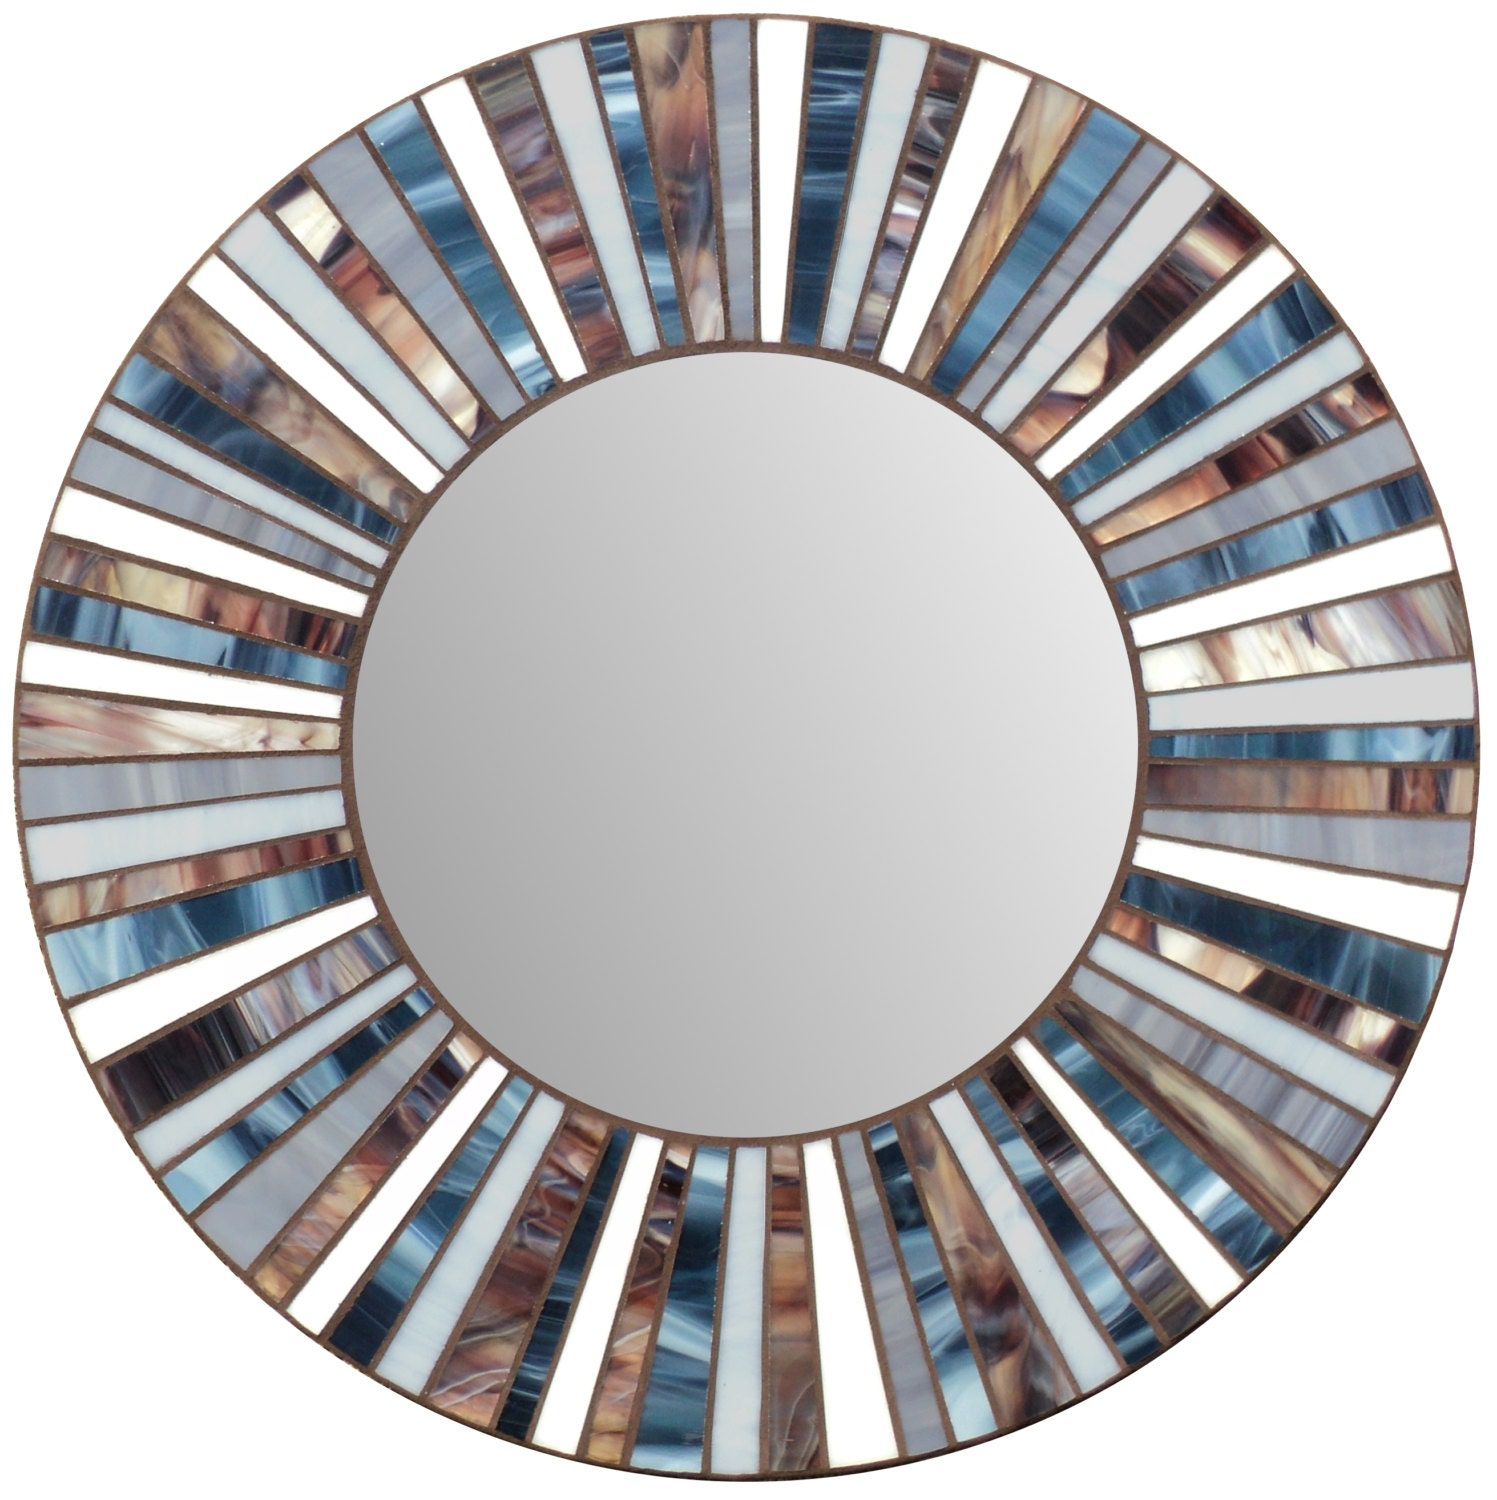 Stained glass mosaic mirror for Mosaic mirror